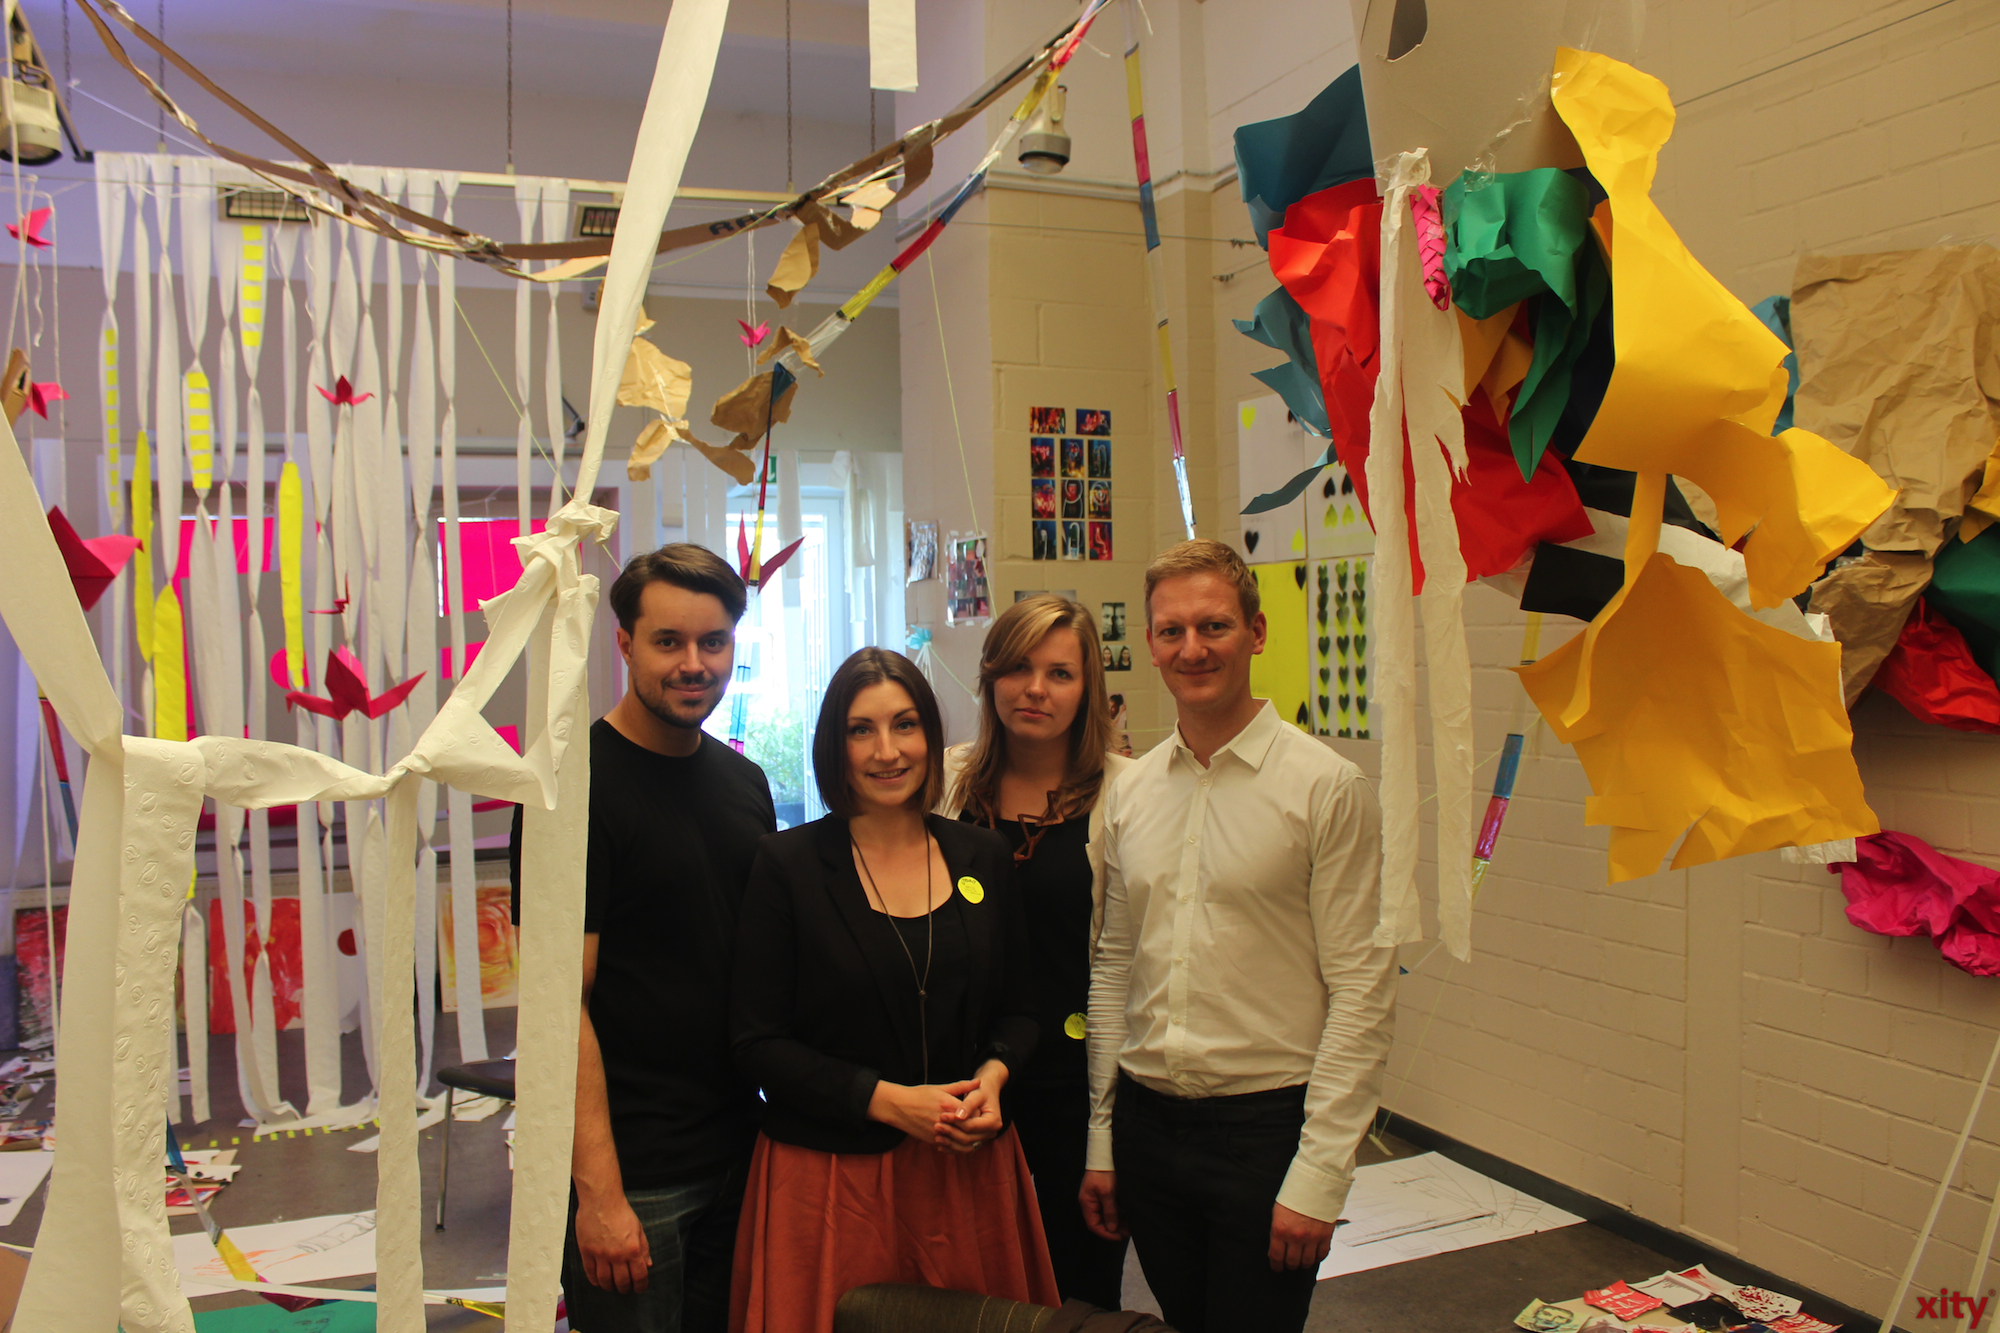 Dennis Palmen, Jennifer Köhler and Agnes Jaraczewski developed the project ARTIG Culturlabor with the help of the Vodafone Stiftung Deutschland(Foto: xity)